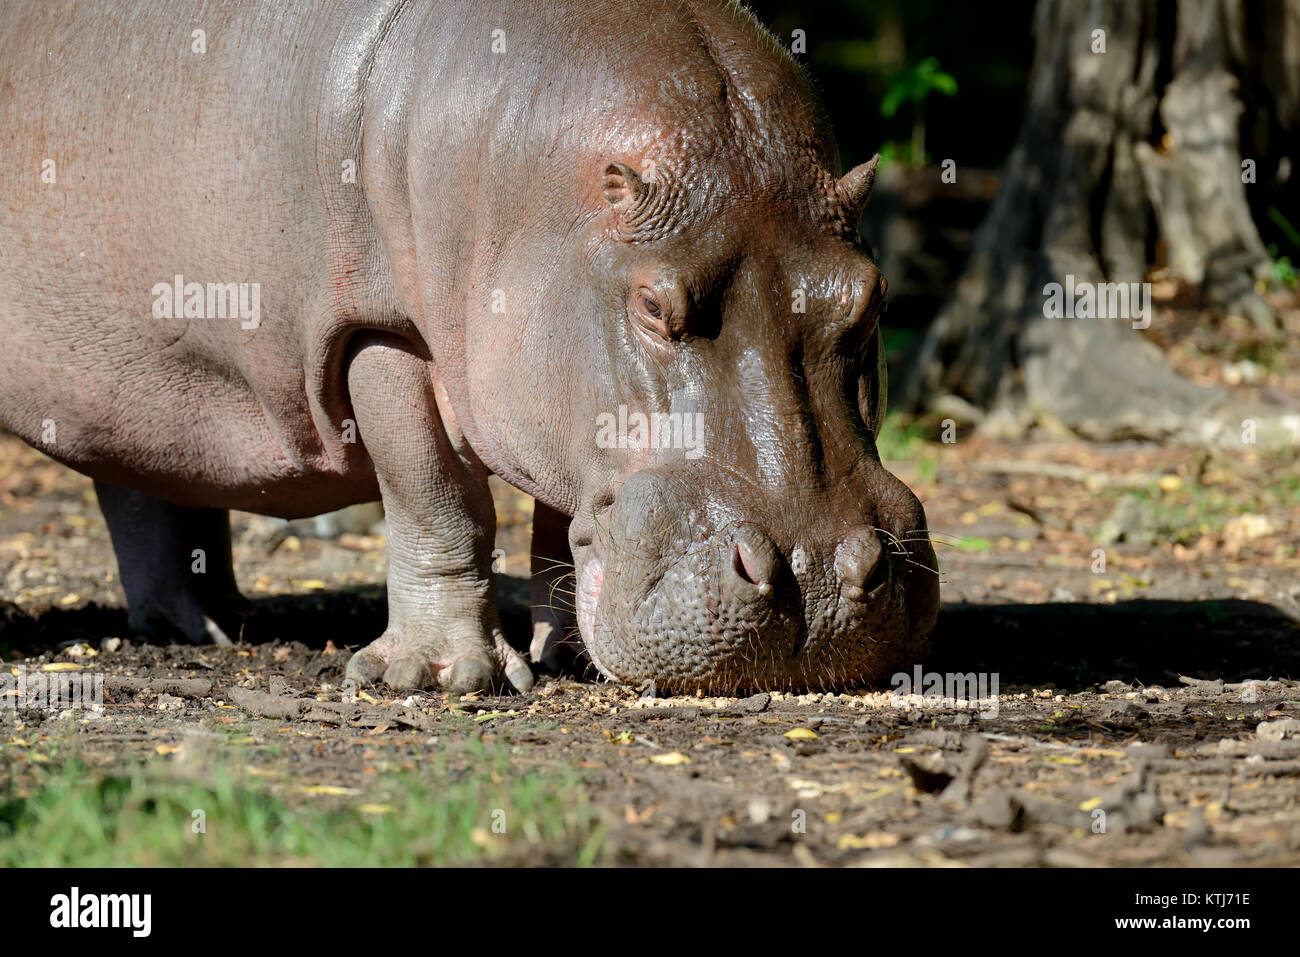 Hippo on lake in Natioanl park of Africa - Stock Image